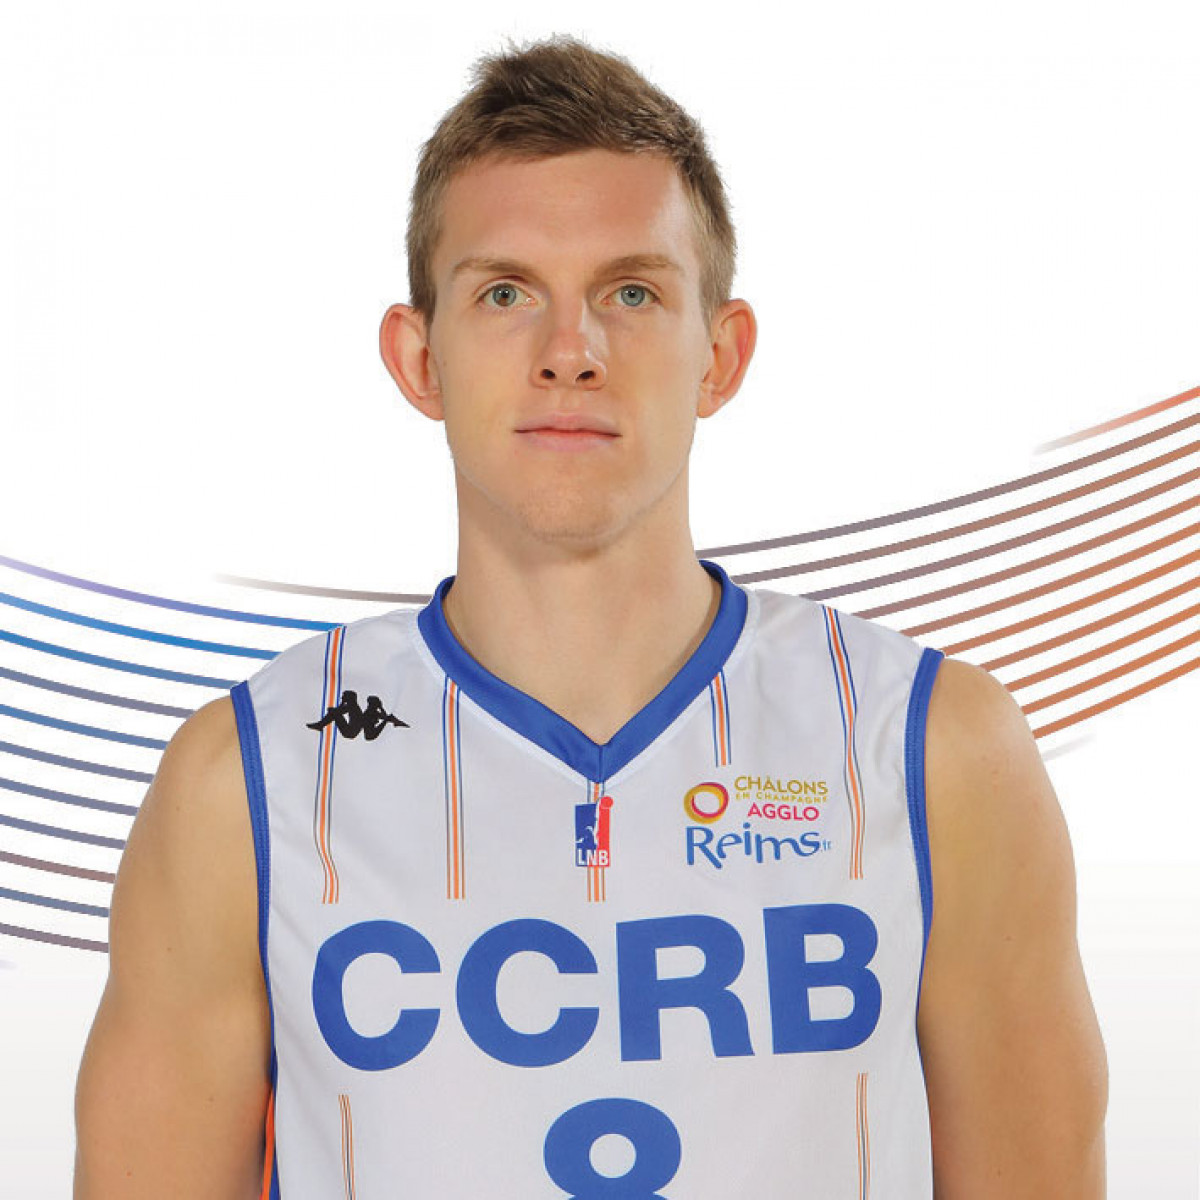 Photo of Alexandre Karolak, 2017-2018 season